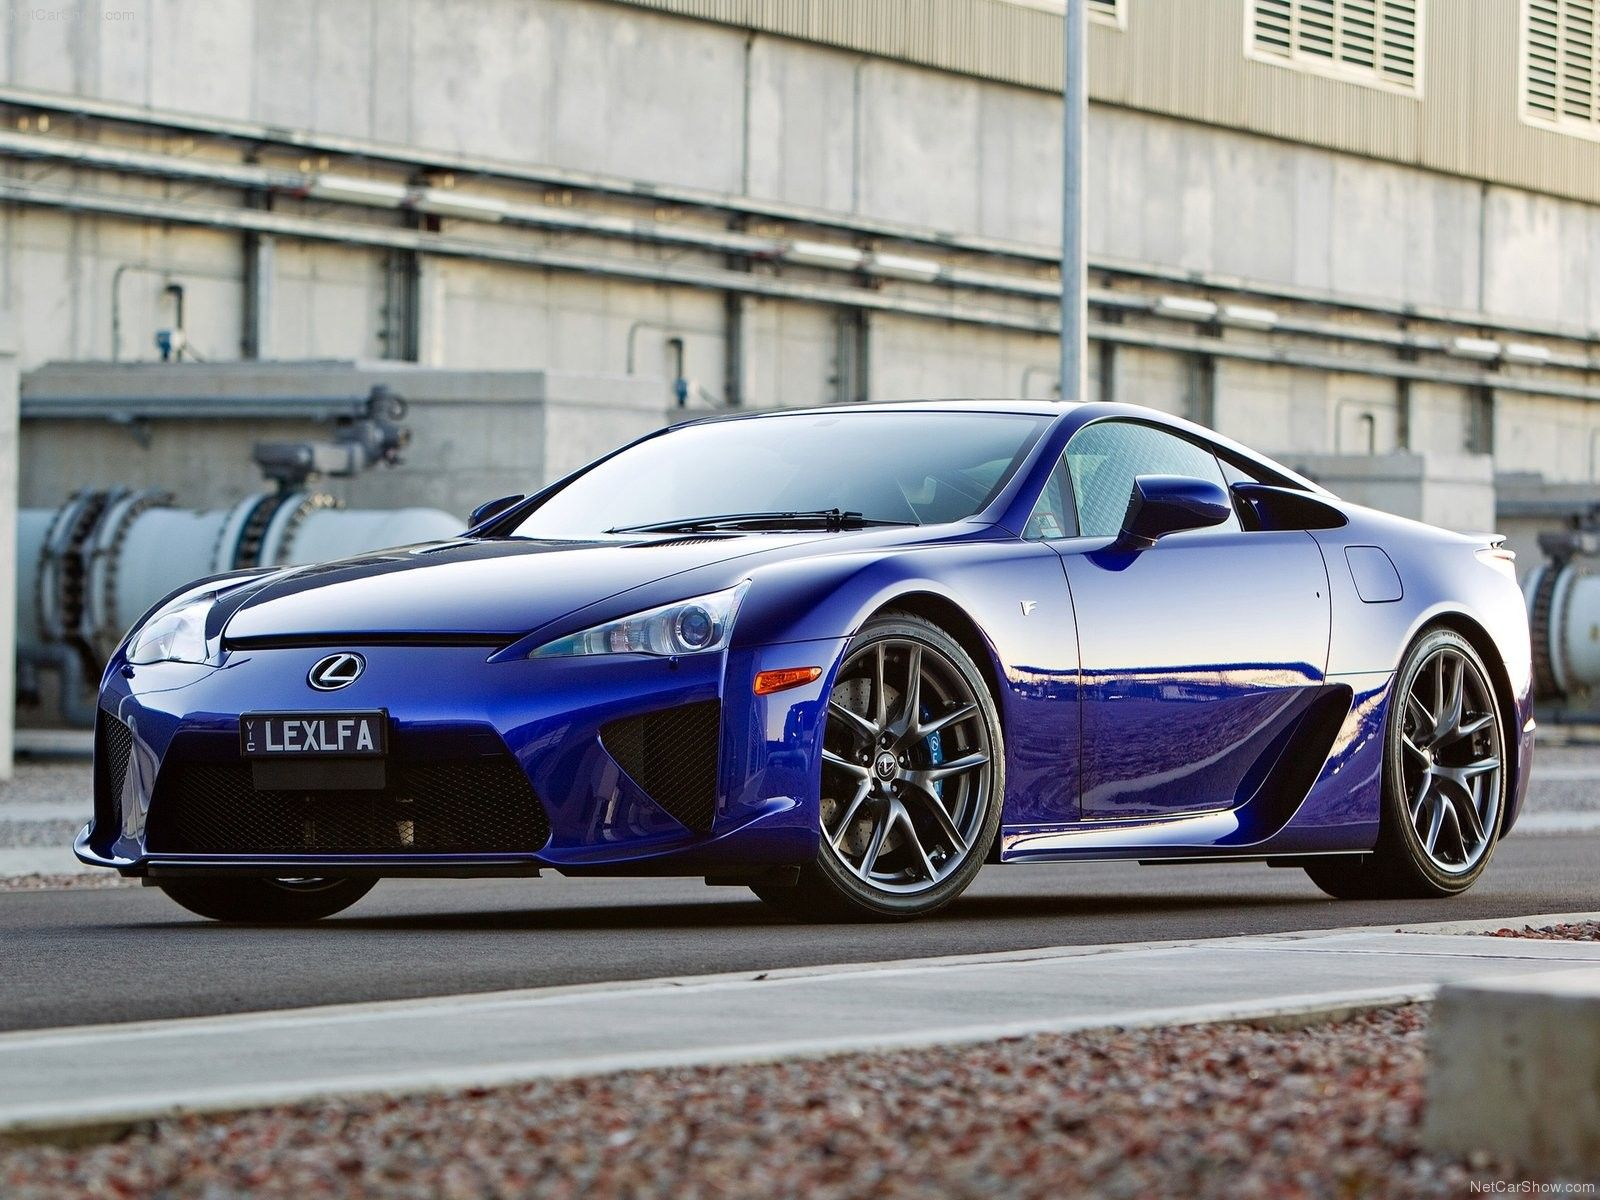 Pin By Laura Matecka On Eye Candy | Pinterest | Lexus LFA, Luxury Cars And  Cars